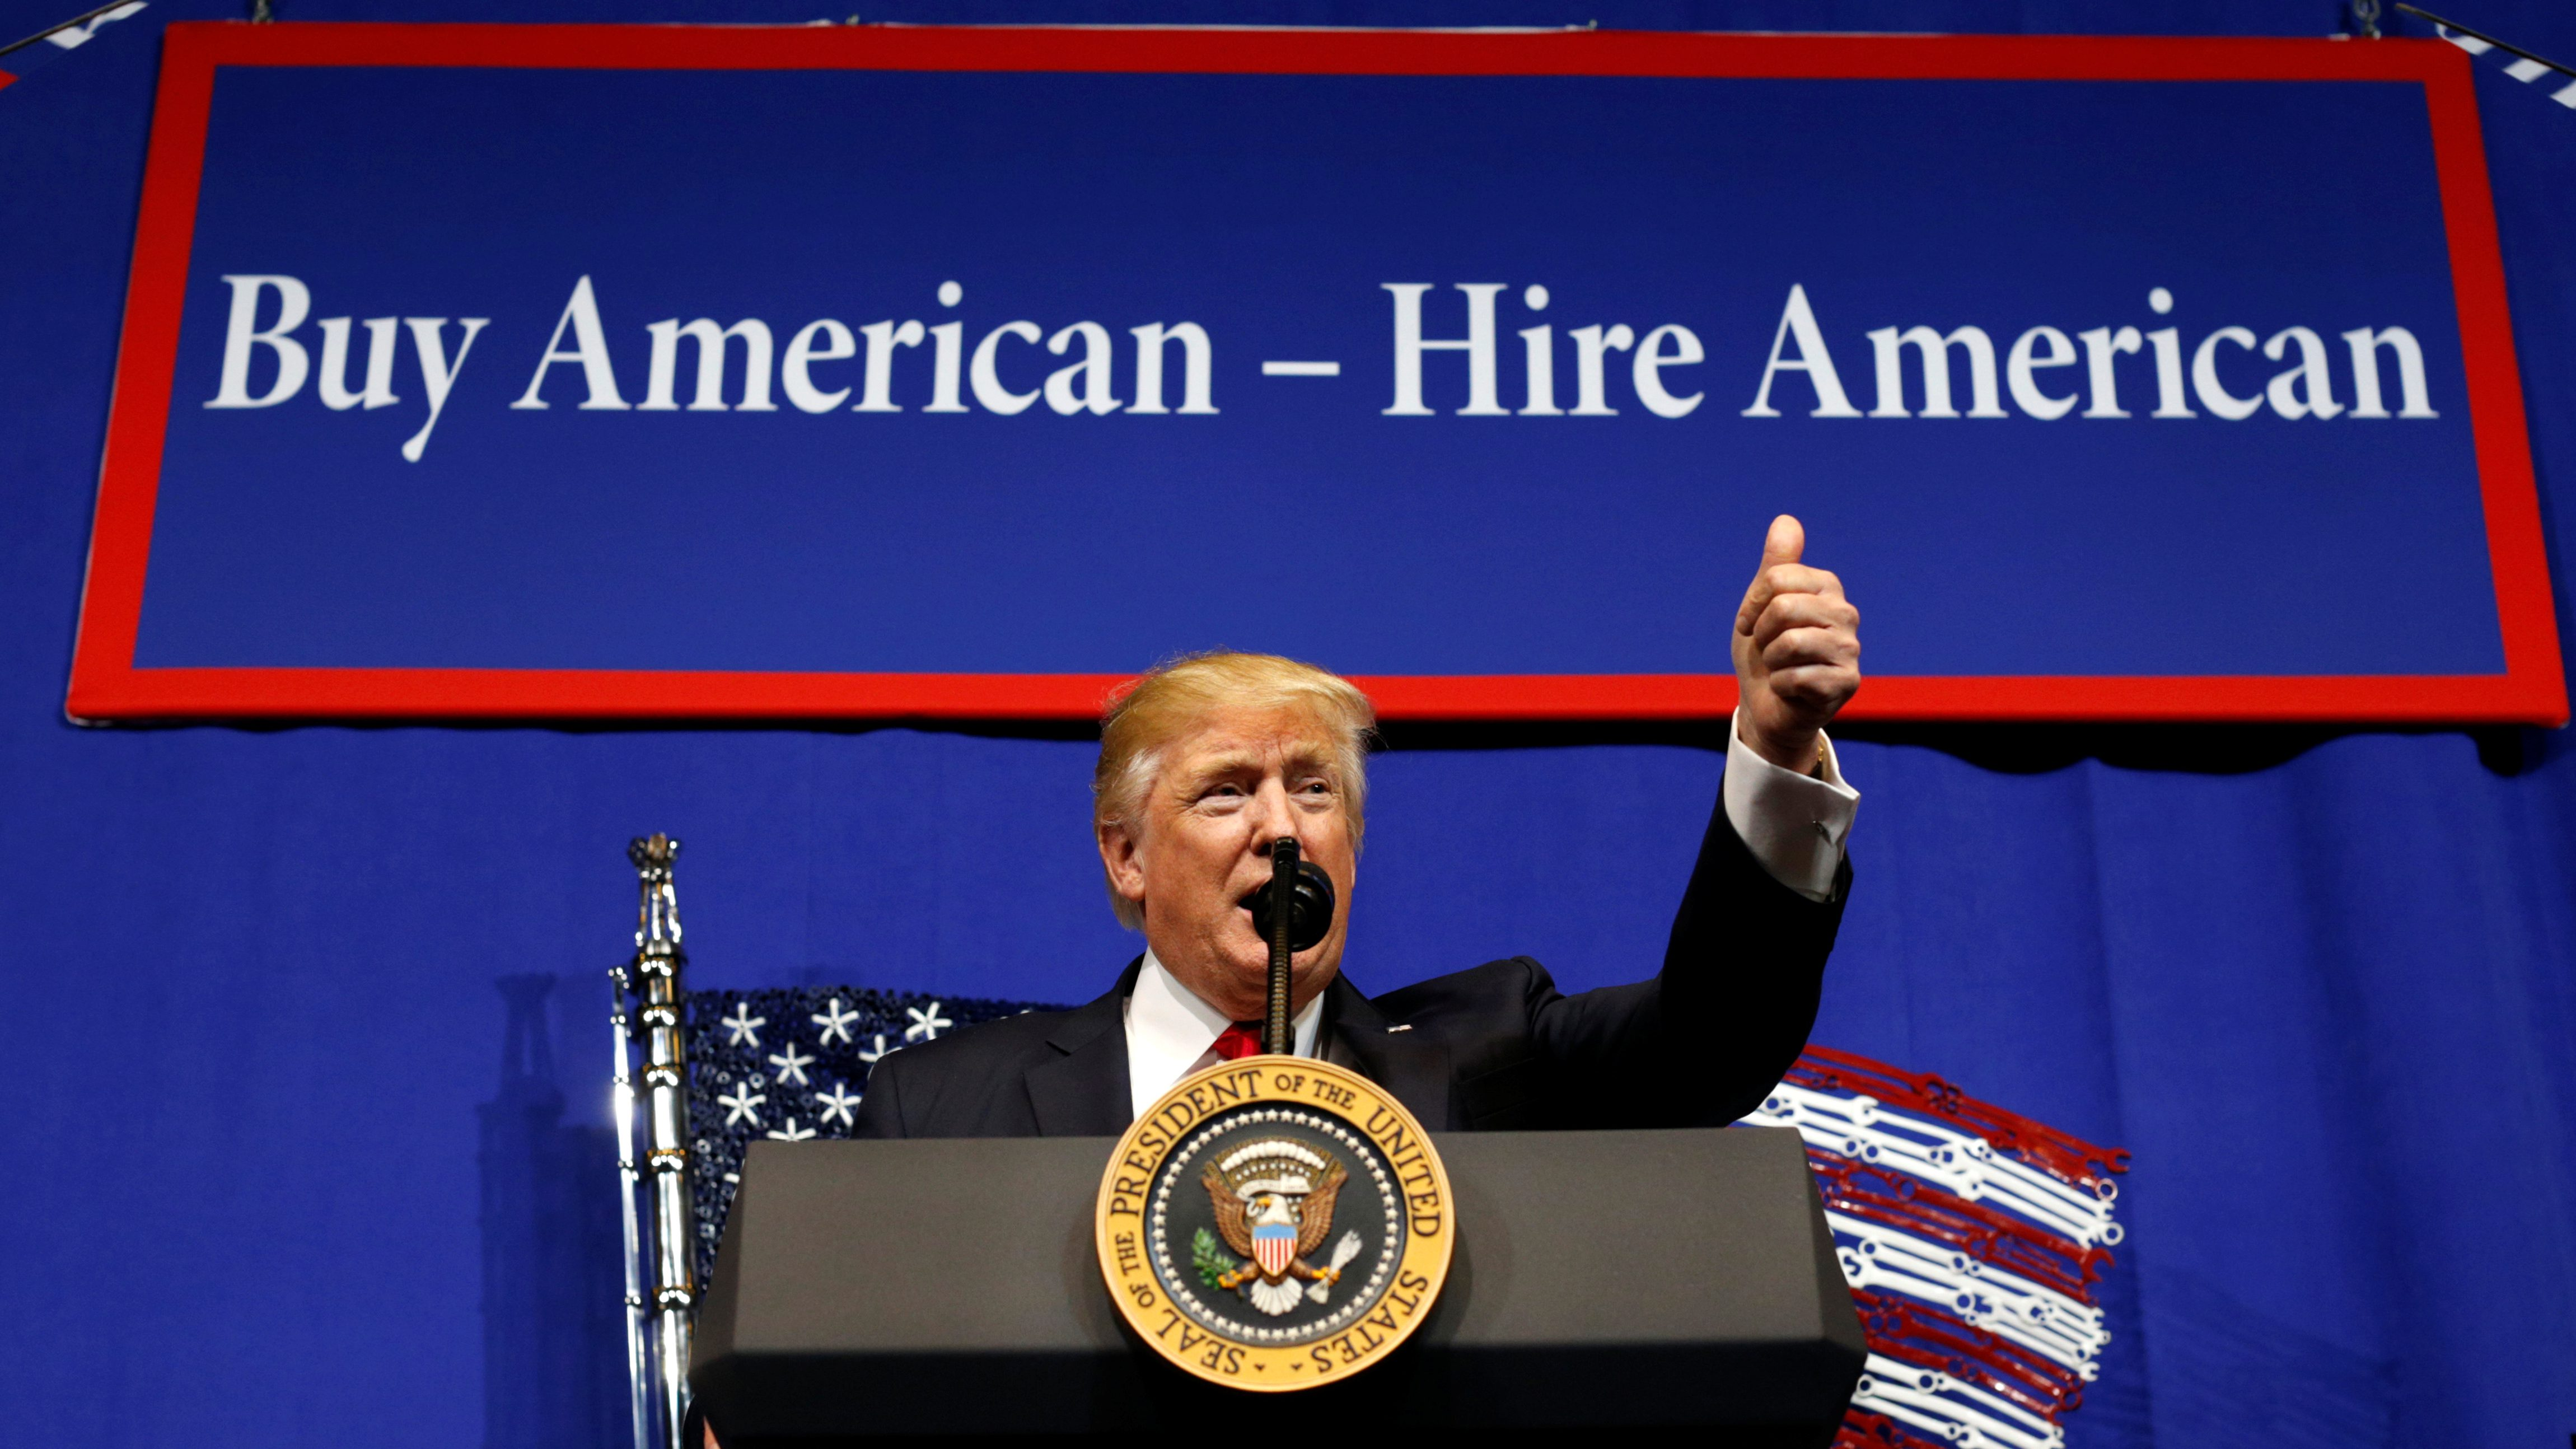 U.S. President Donald Trump speaks before signing an executive order directing federal agencies to recommend changes to a temporary visa program used to bring foreign workers to the United States to fill high-skilled jobs during a visit to the world headquarters of Snap-On Inc, a tool manufacturer, in Kenosha, Wisconsin, U.S., April 18, 2017.